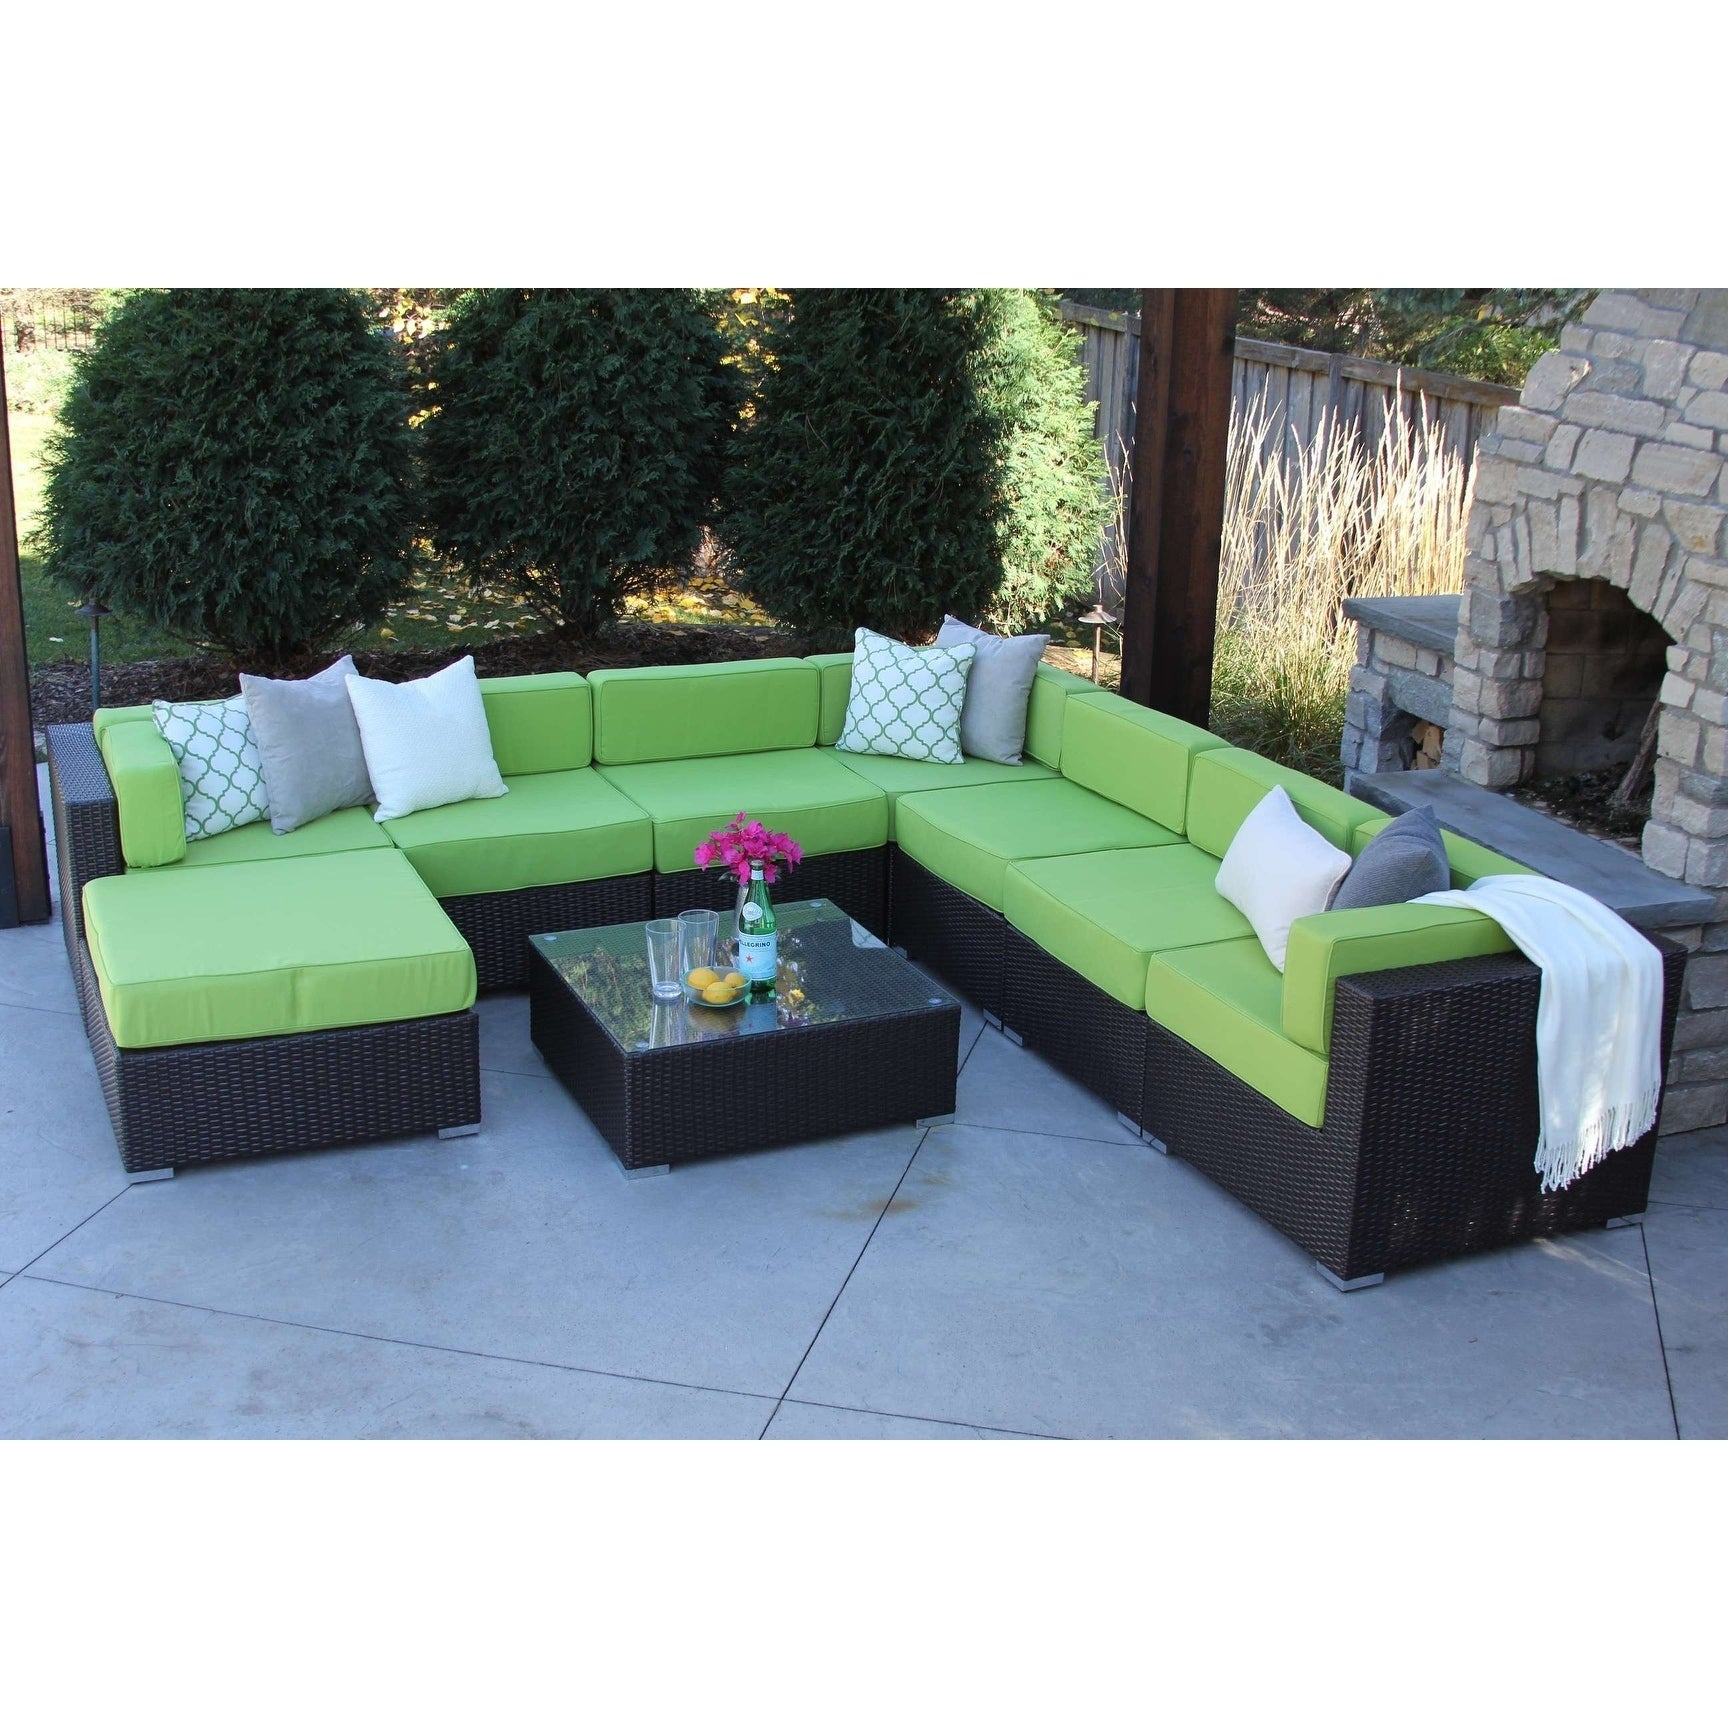 Irving 9-PC Modern Outdoor Rattan Patio Furniture Sofa Set-Modular |  Overstock.com Shopping - The Best Deals on Sofas, Chairs & Sectionals